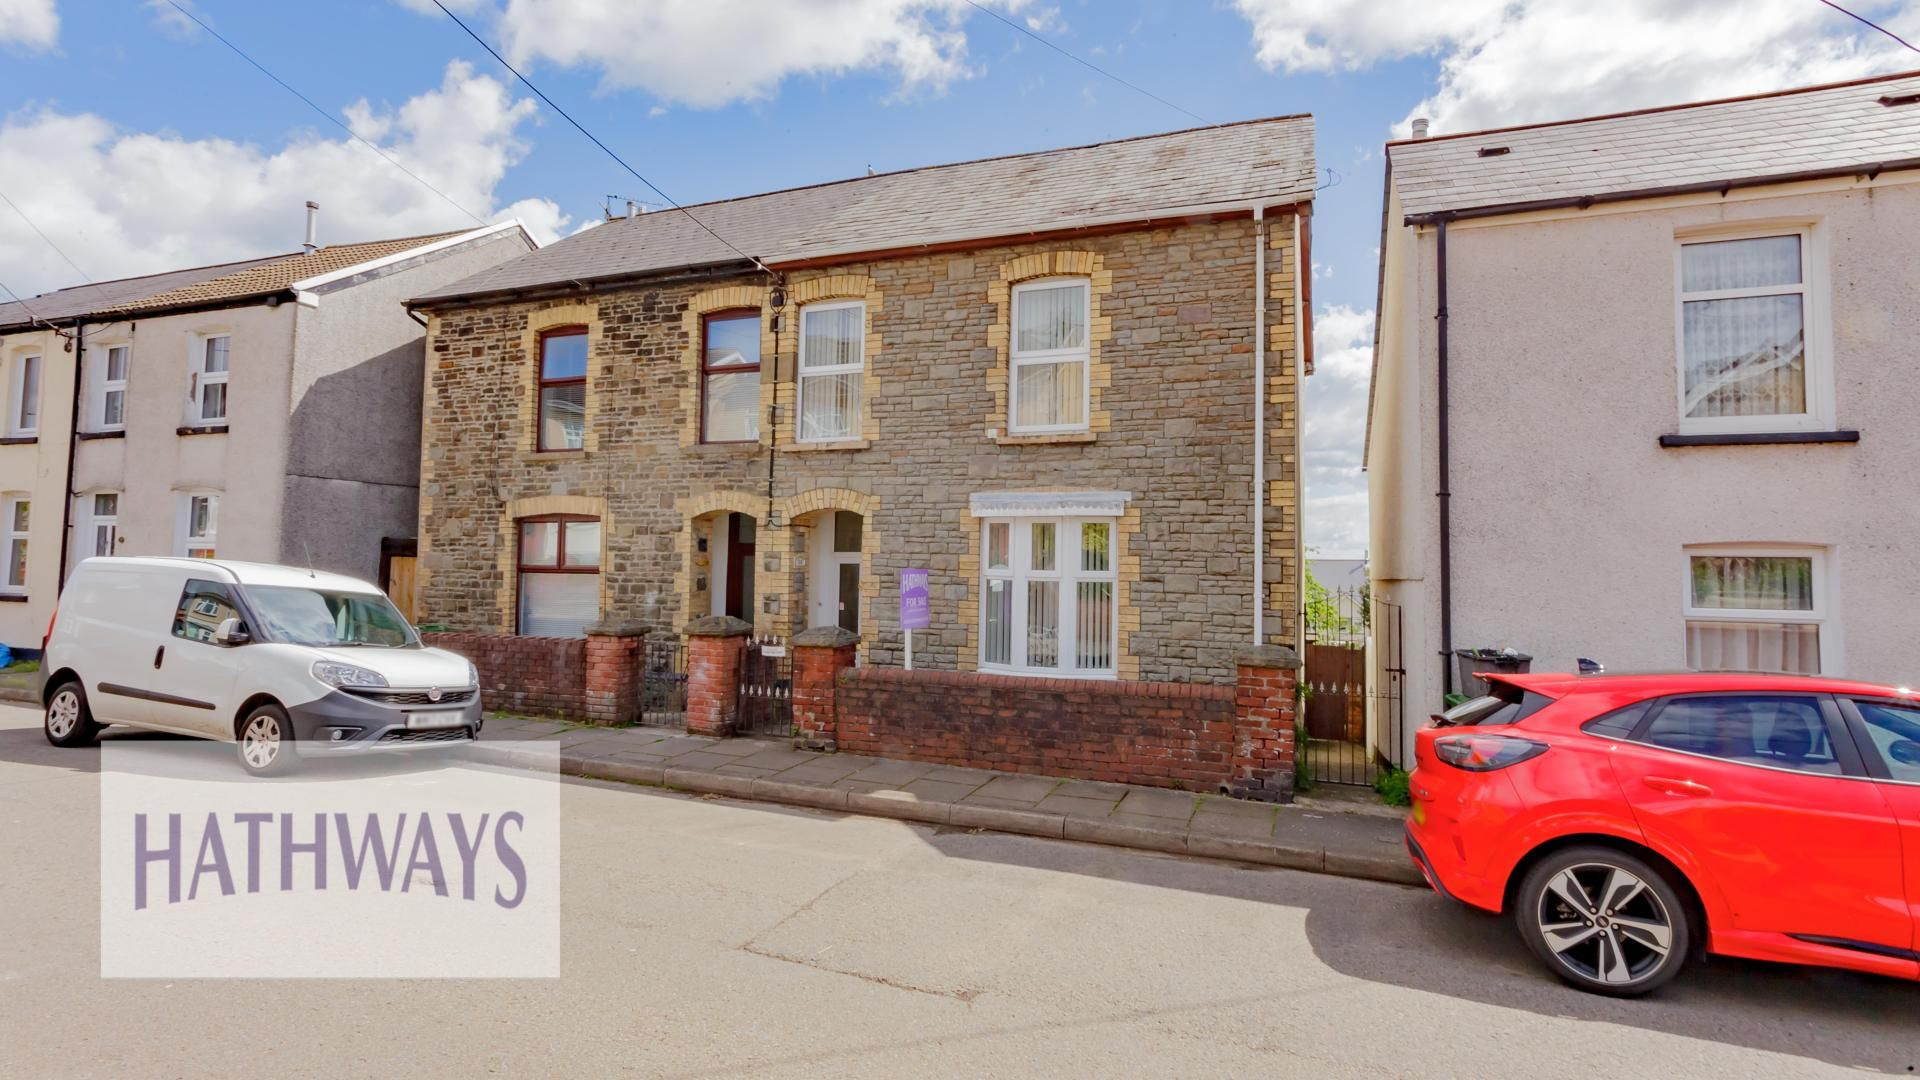 3 bed house for sale in Picton Street, NP4